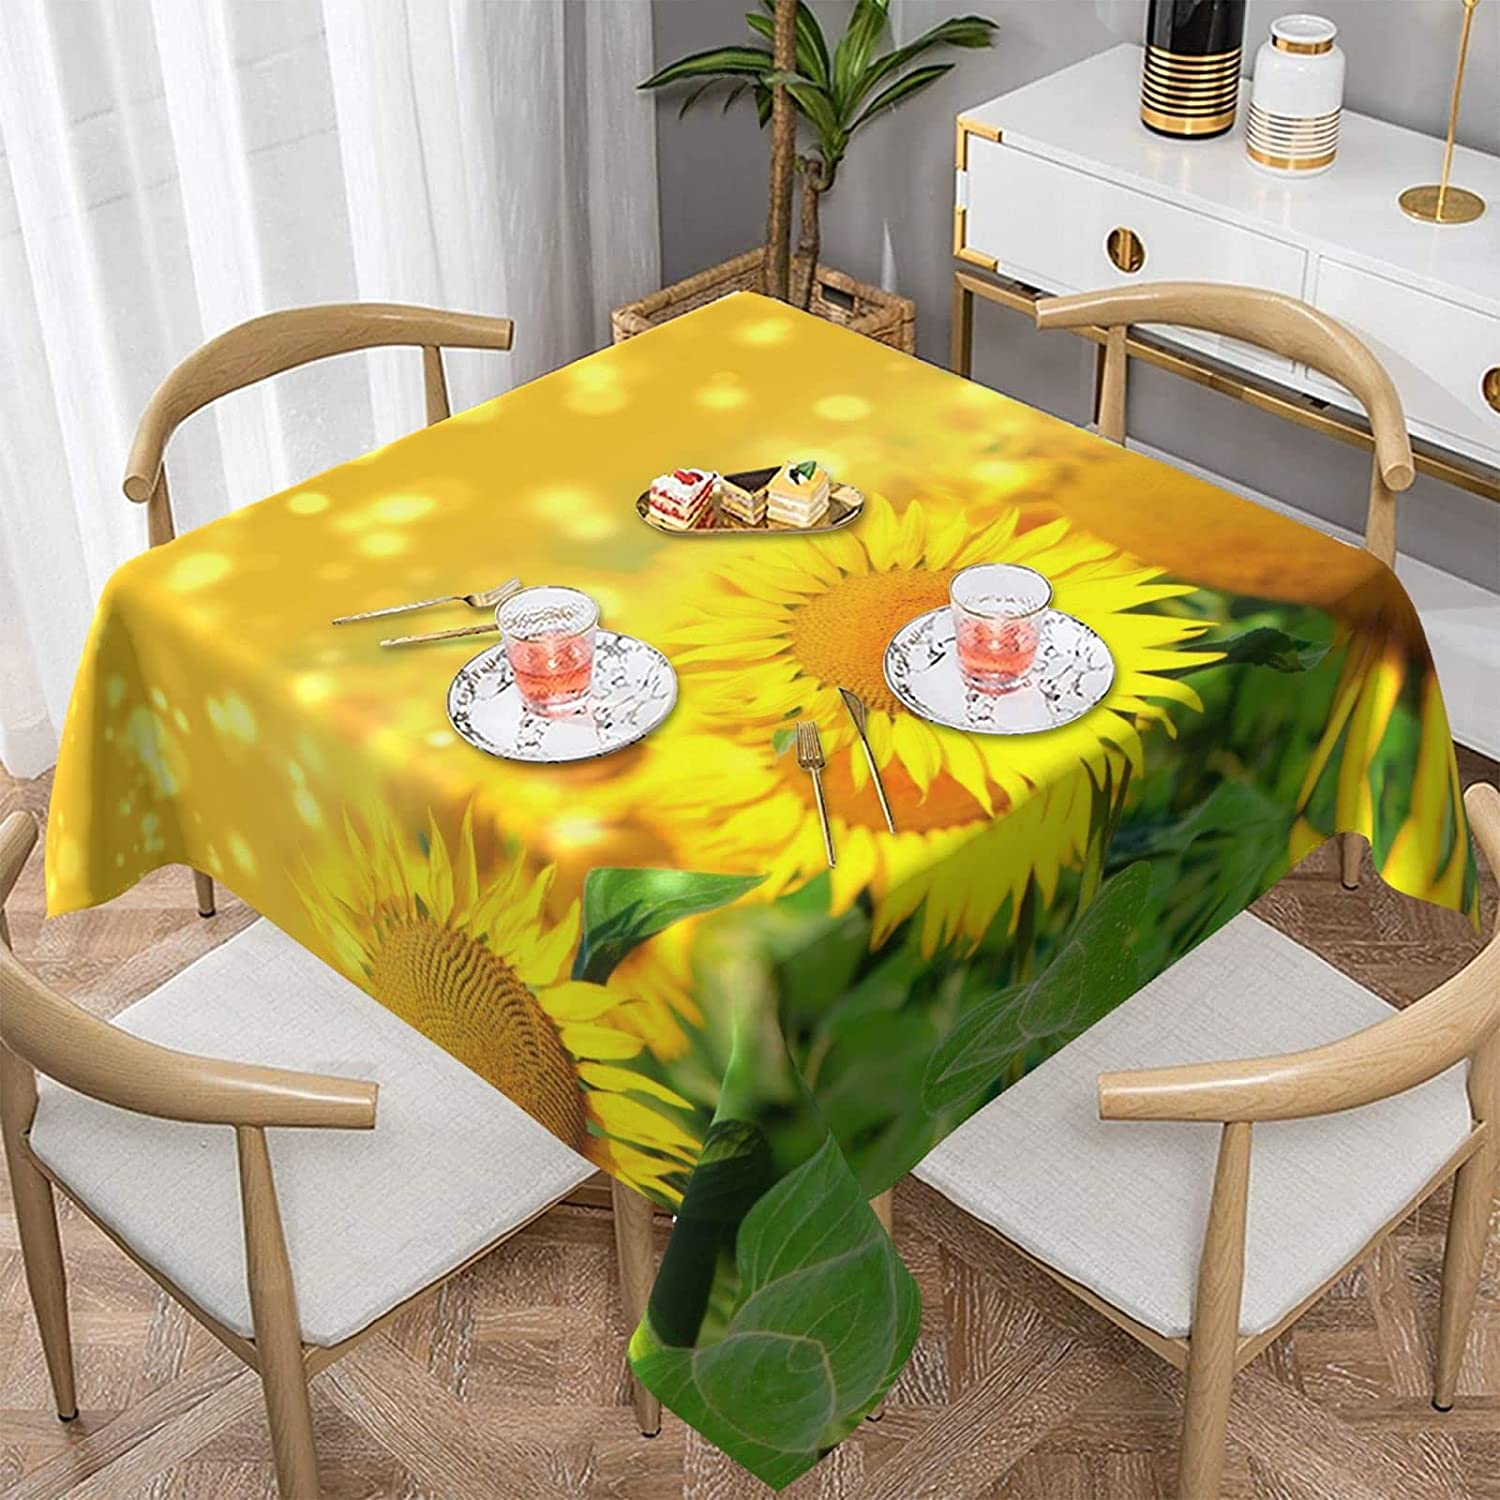 Vrkajzew Sunflower Field Printed Square spillproof Po Tablecloth Ranking TOP16 Special sale item